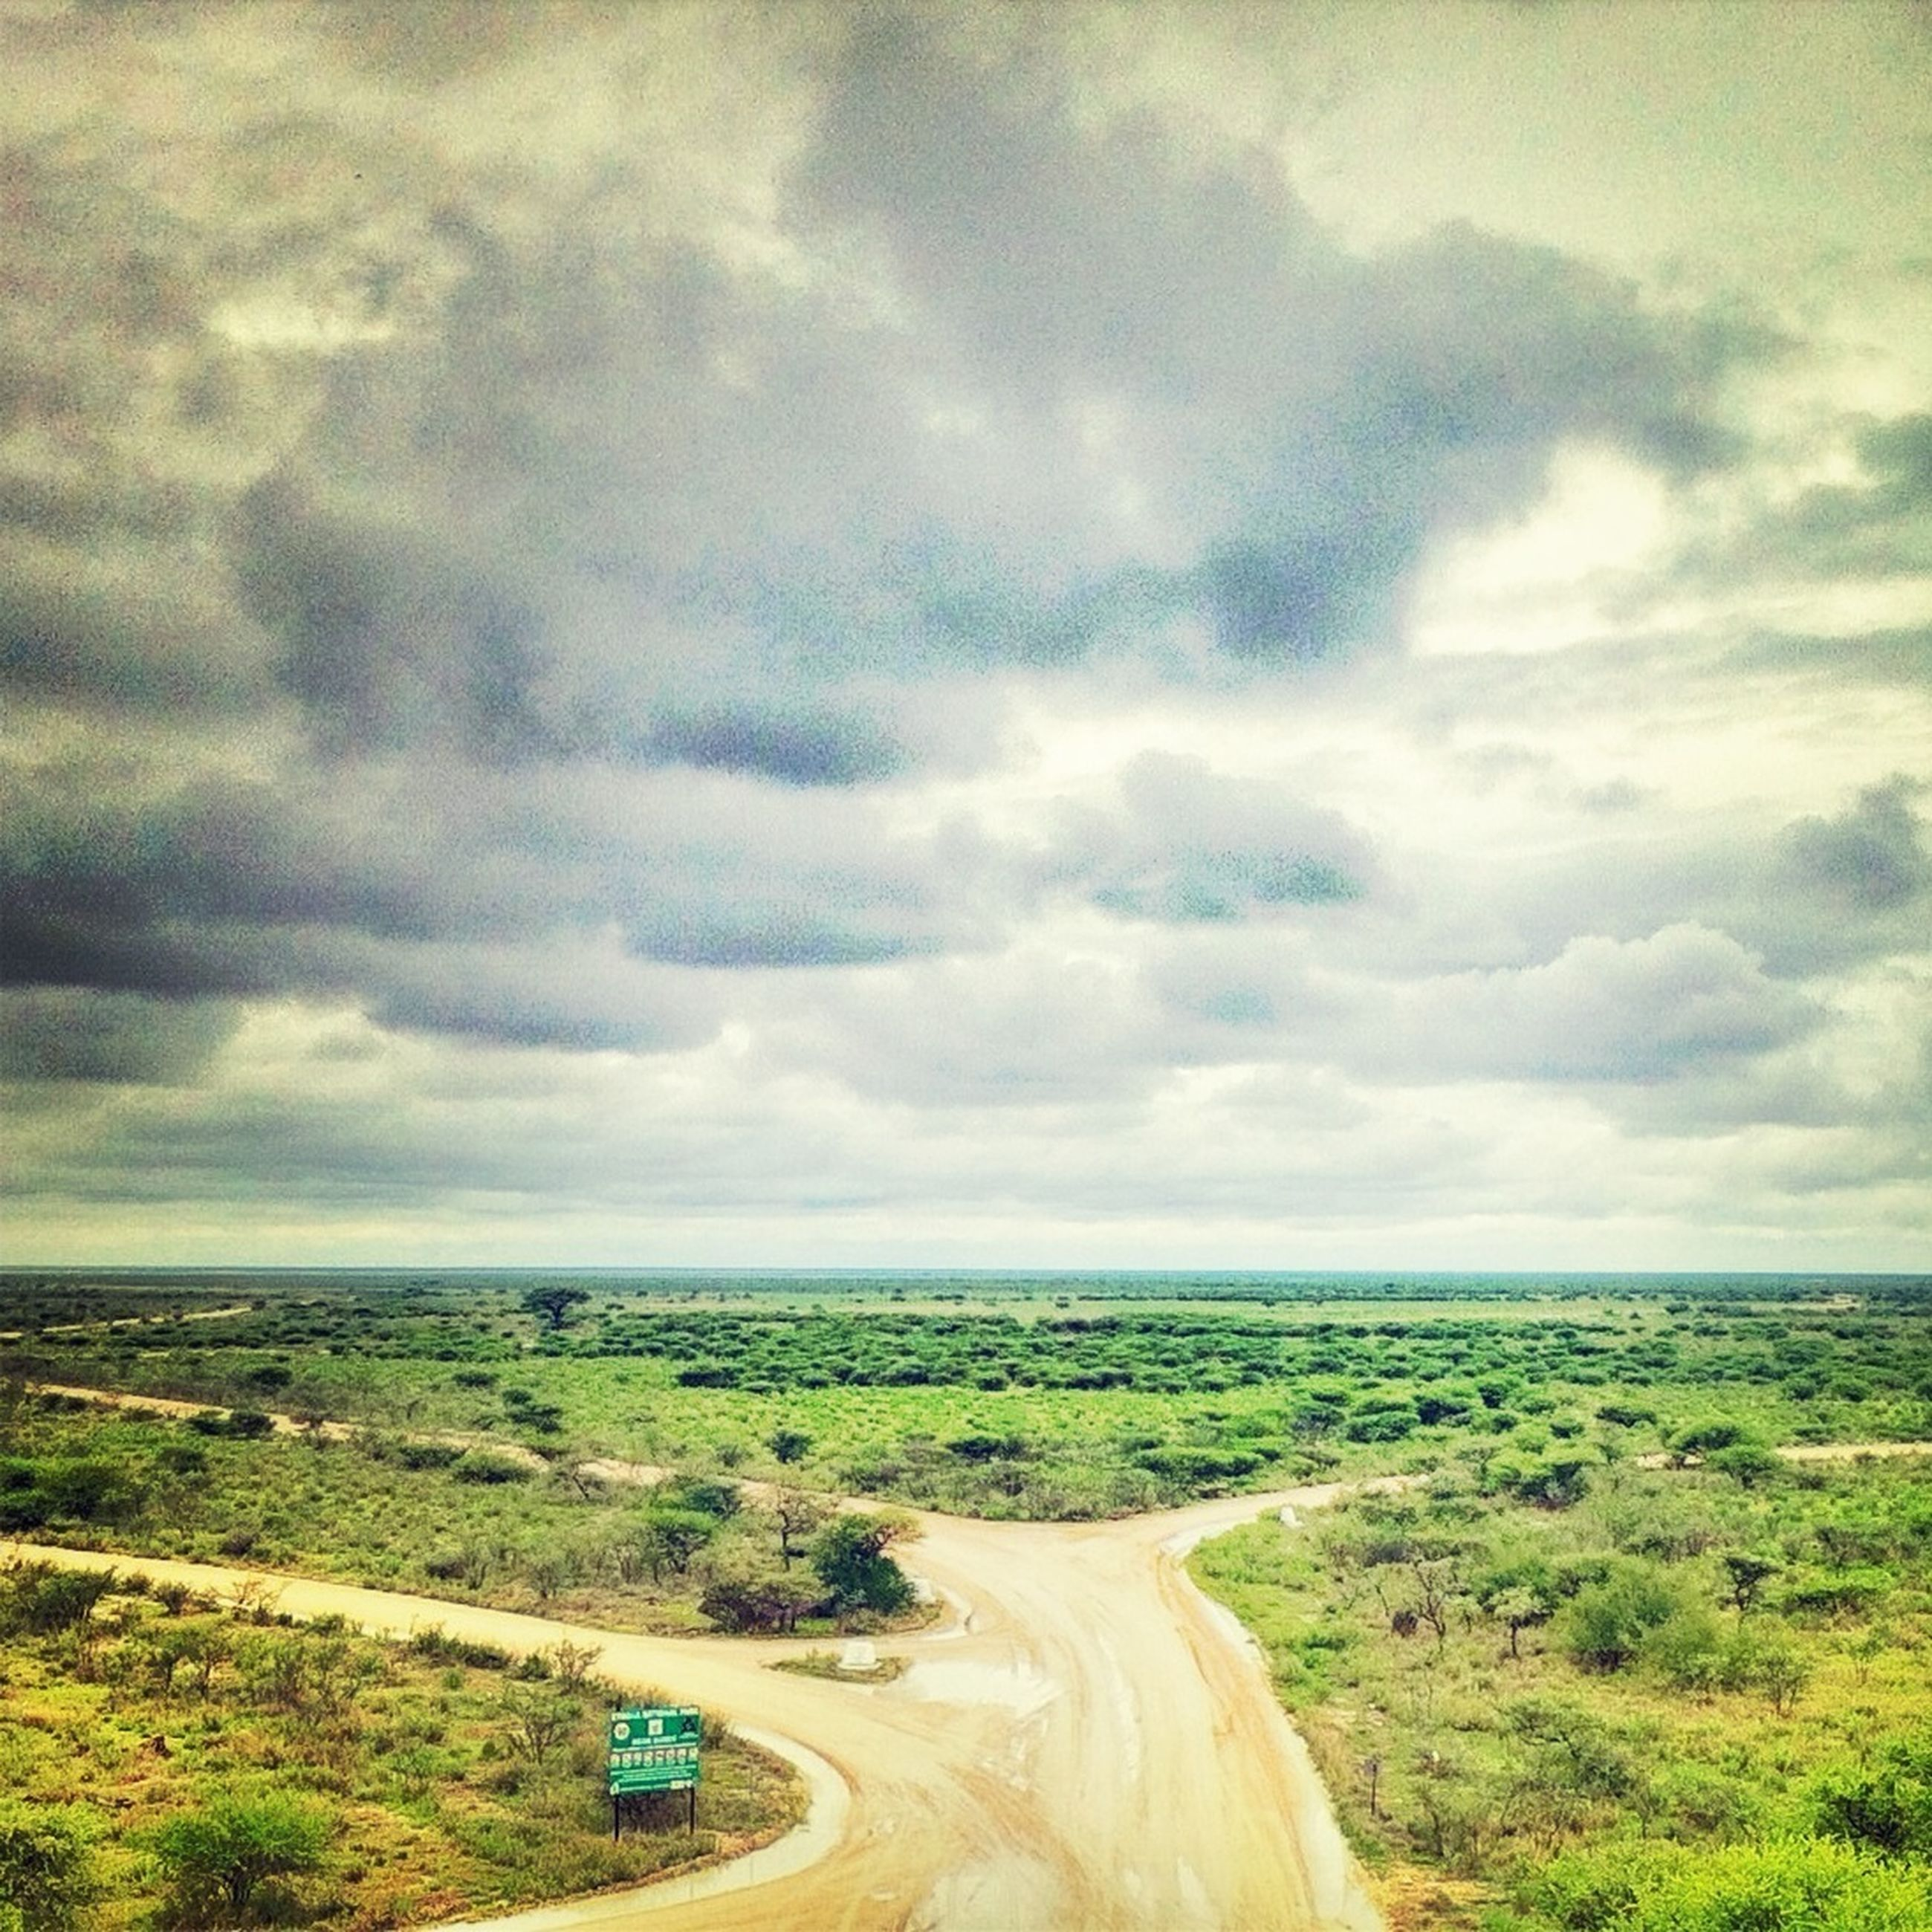 sky, landscape, cloud - sky, field, grass, domestic animals, cloud, tranquil scene, cloudy, transportation, nature, tranquility, scenics, mammal, road, beauty in nature, dirt road, horizon over land, non-urban scene, day